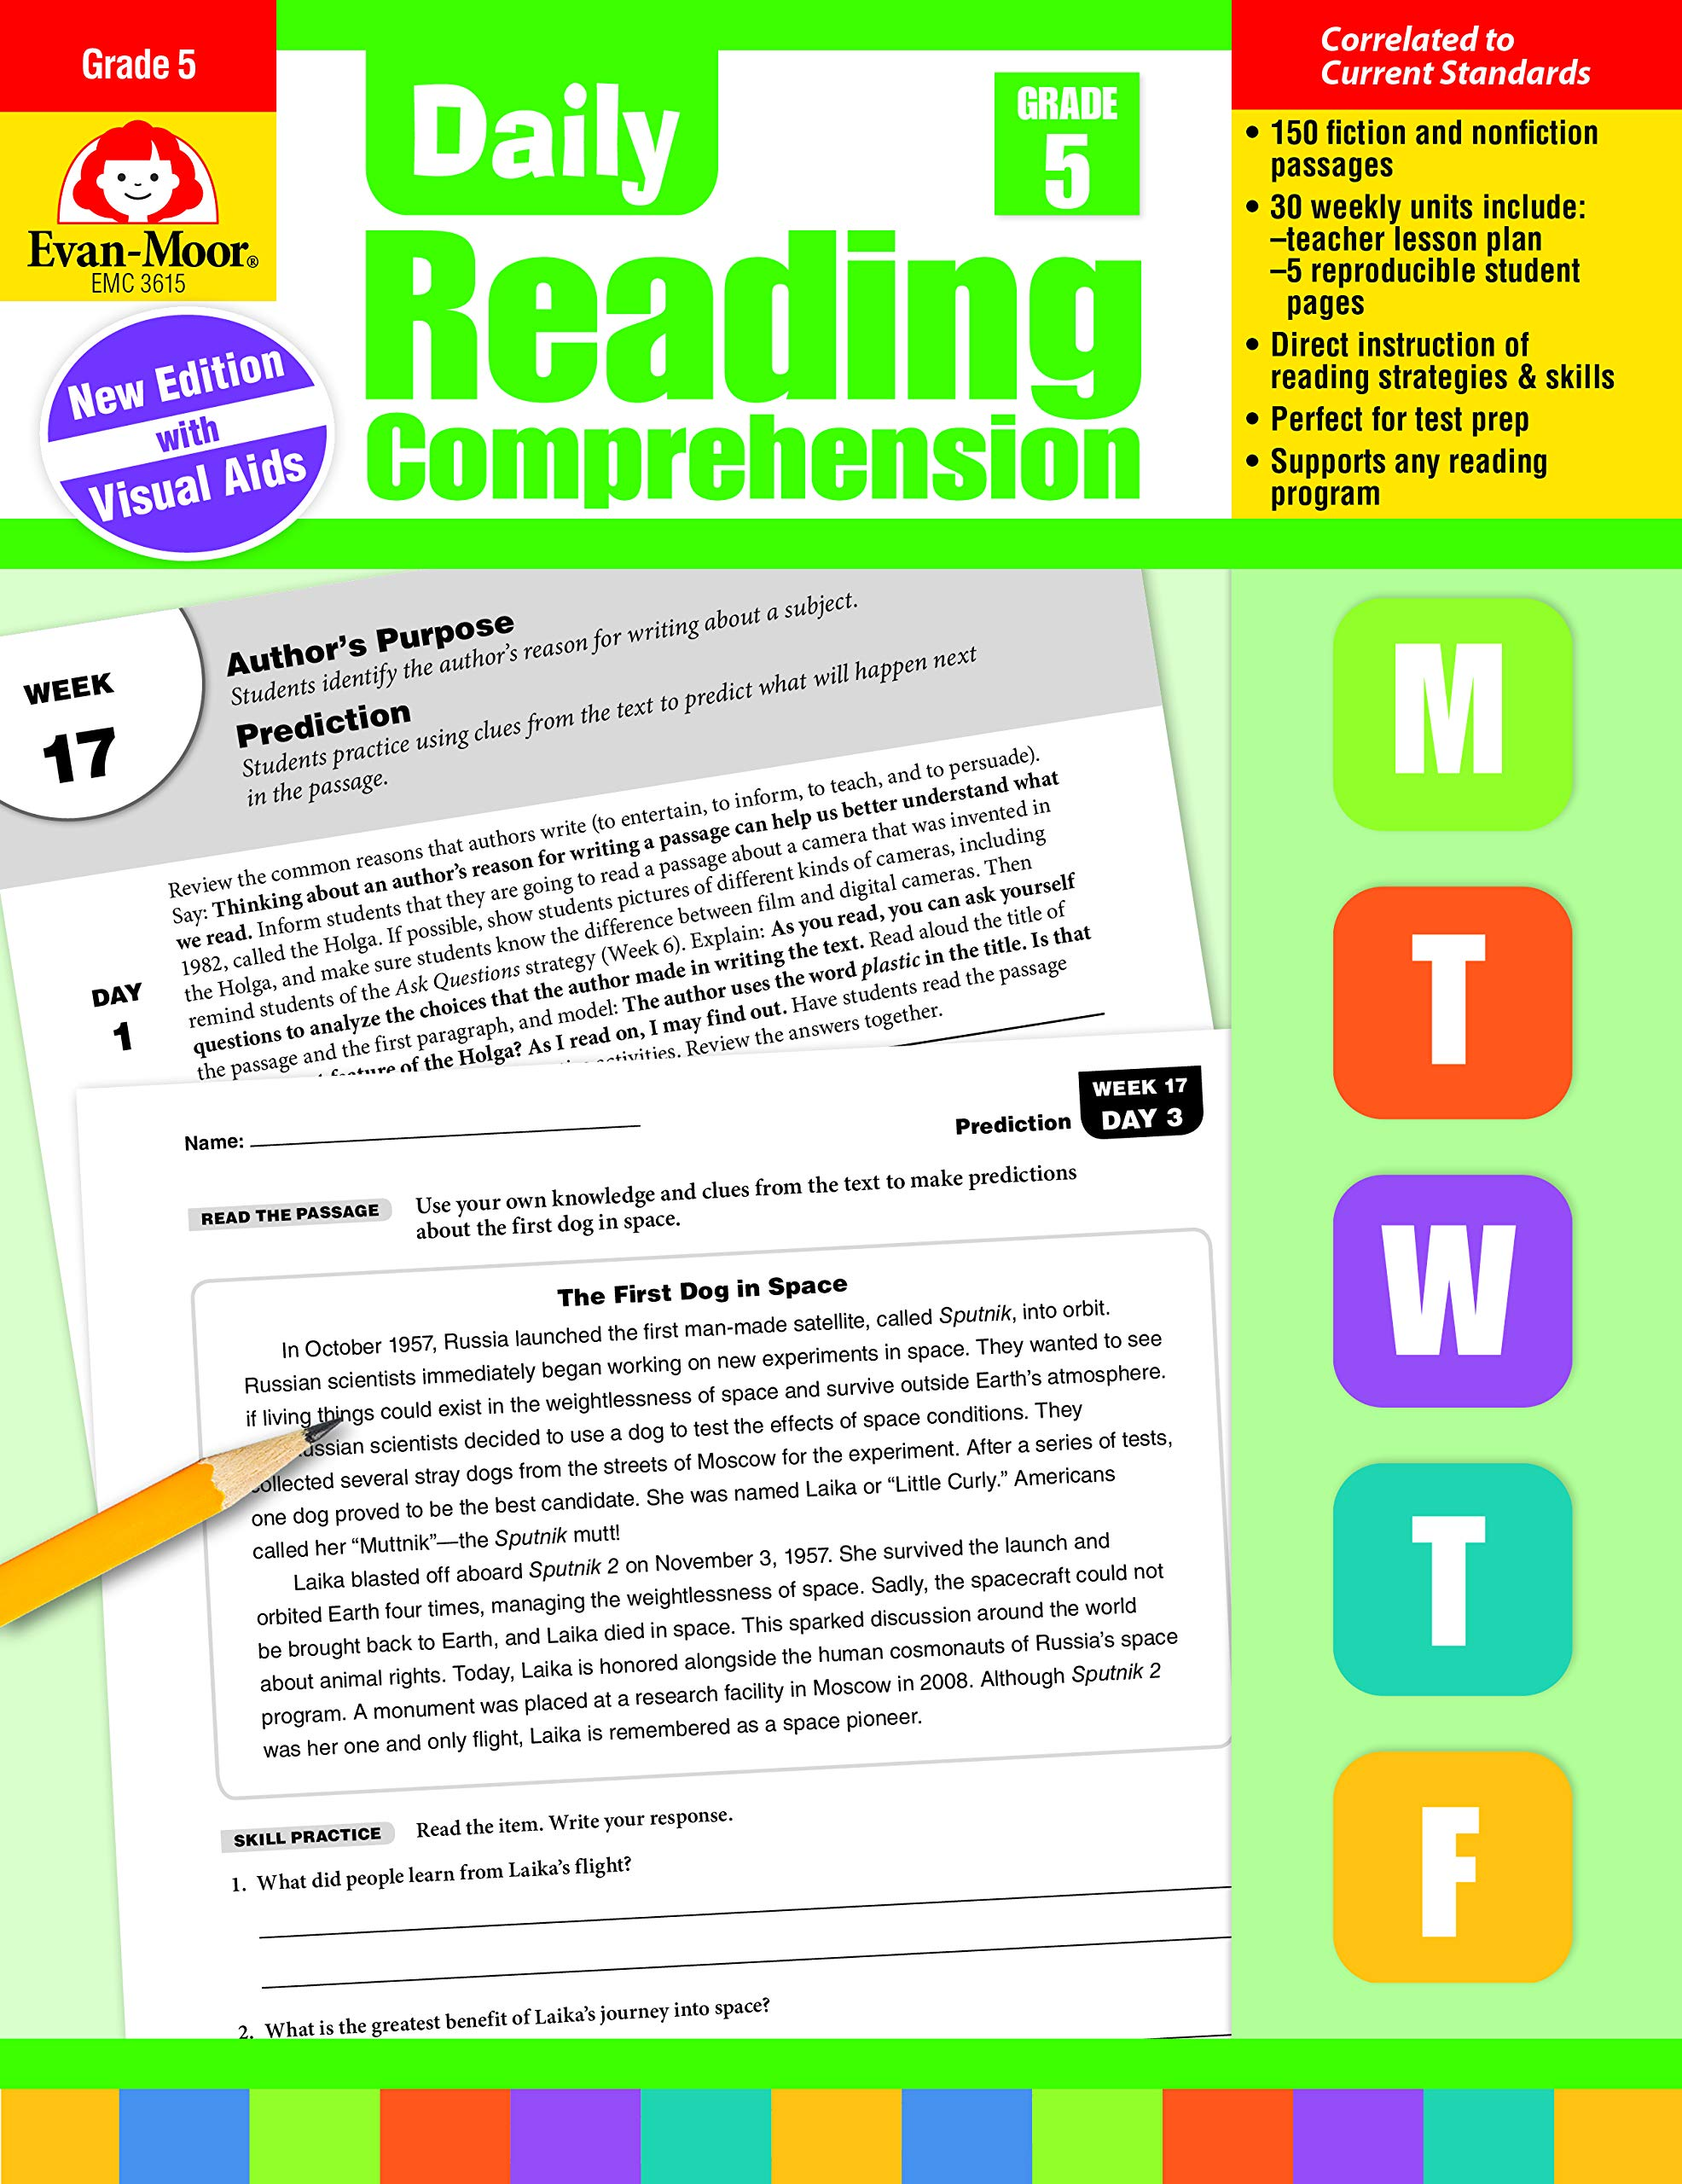 Amazon com: Evan-Moor Daily Reading Comprehension, Grade 5